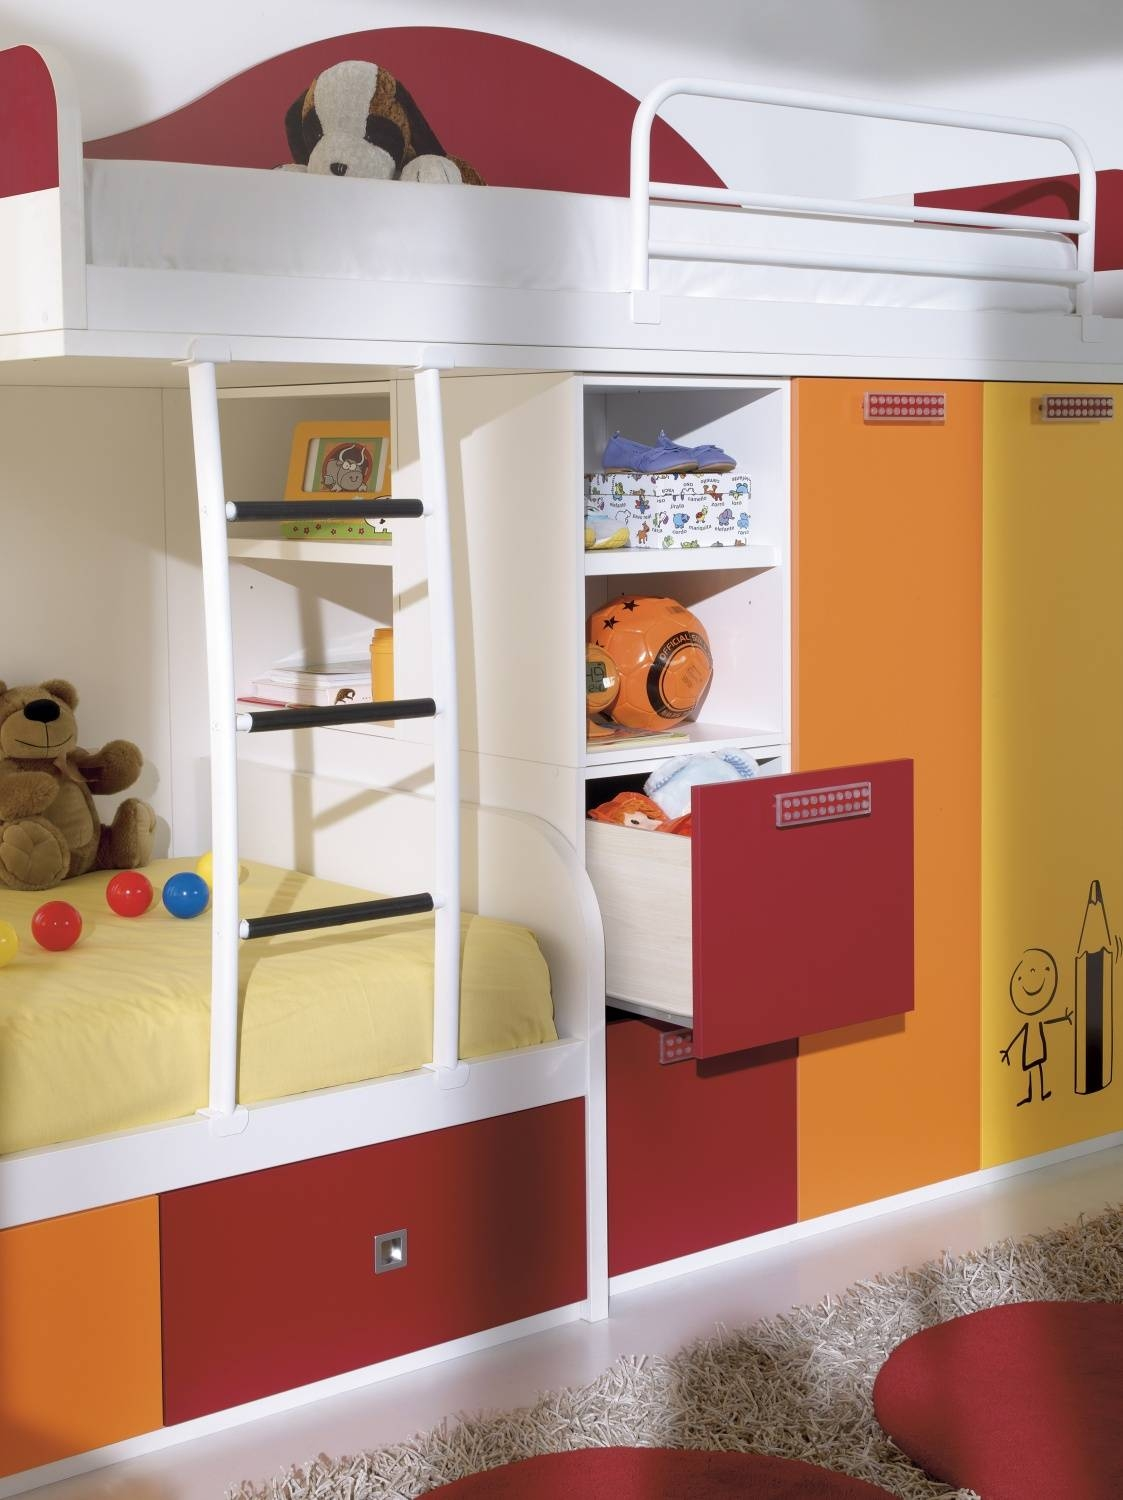 Kids Bedroom Sets | Kids Beds | Wardrobes | Desks | Made In Any Colour within Childrens Bed With Wardrobes Underneath (Image 10 of 15)